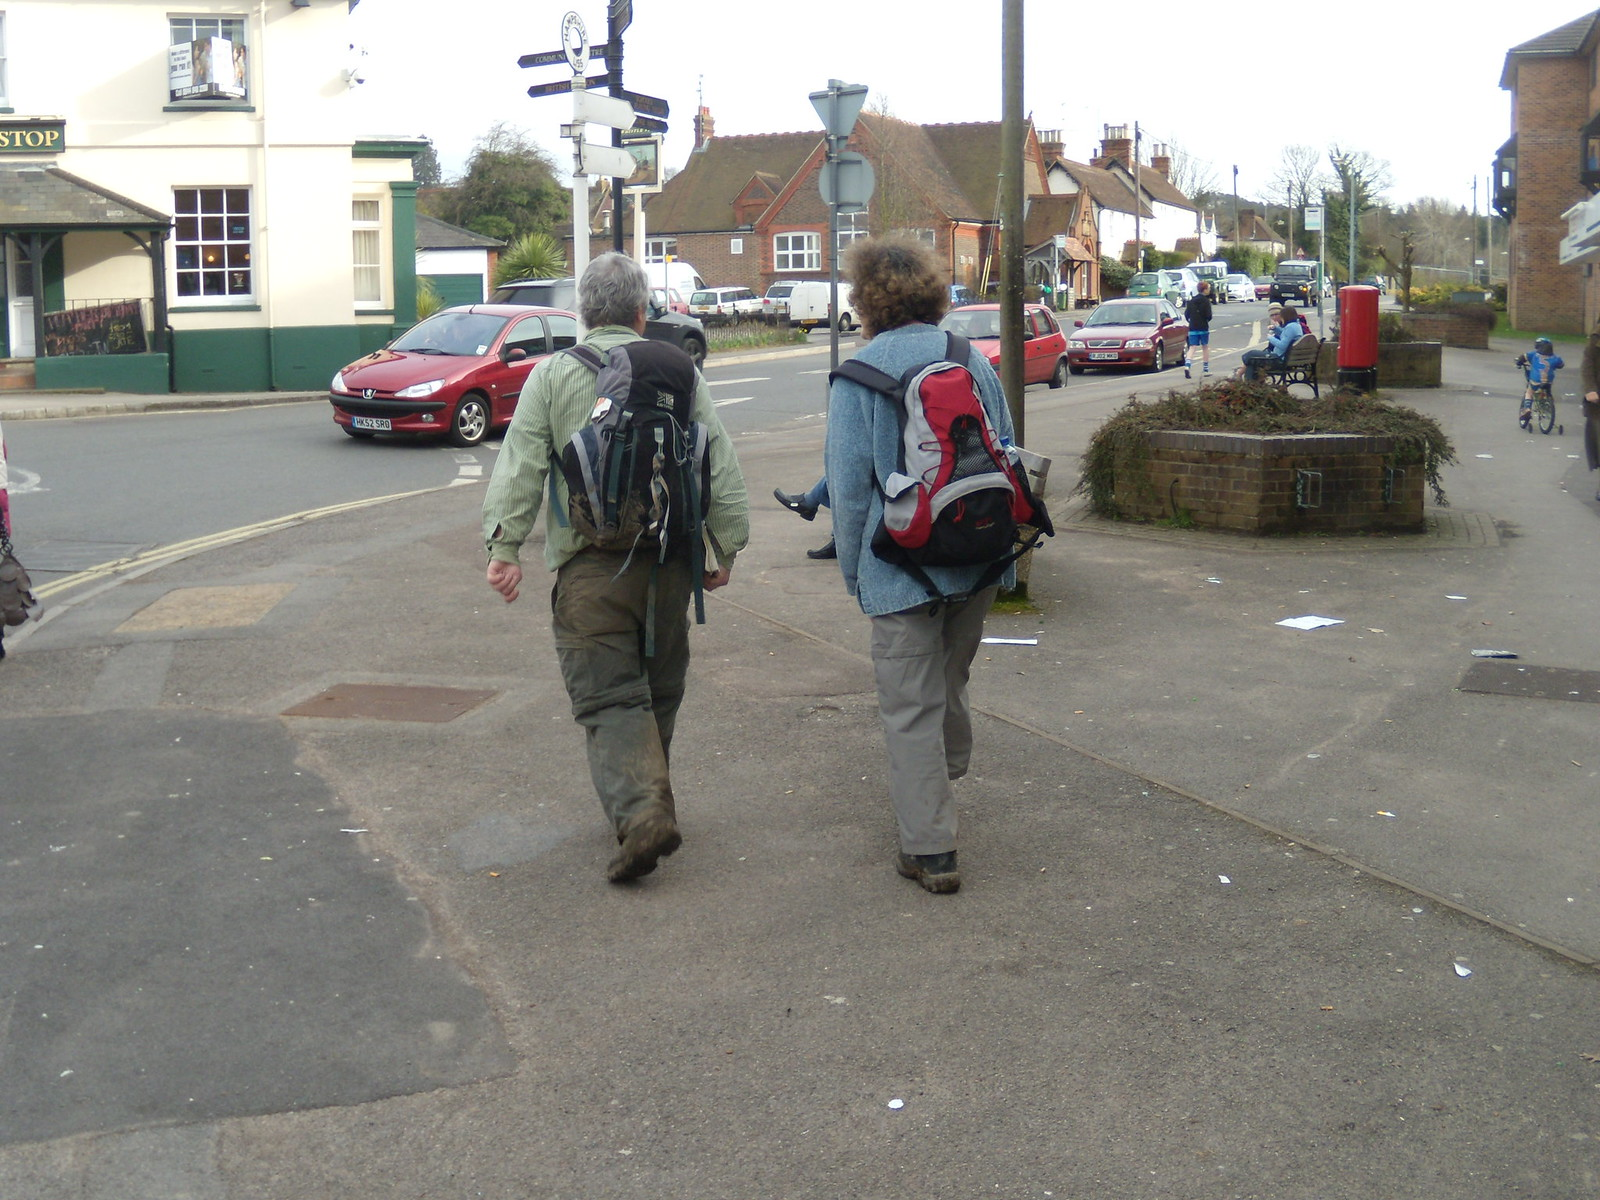 Two elegantly attired walkers Petersfield to Liss That's the Whistlestop they're headed for.